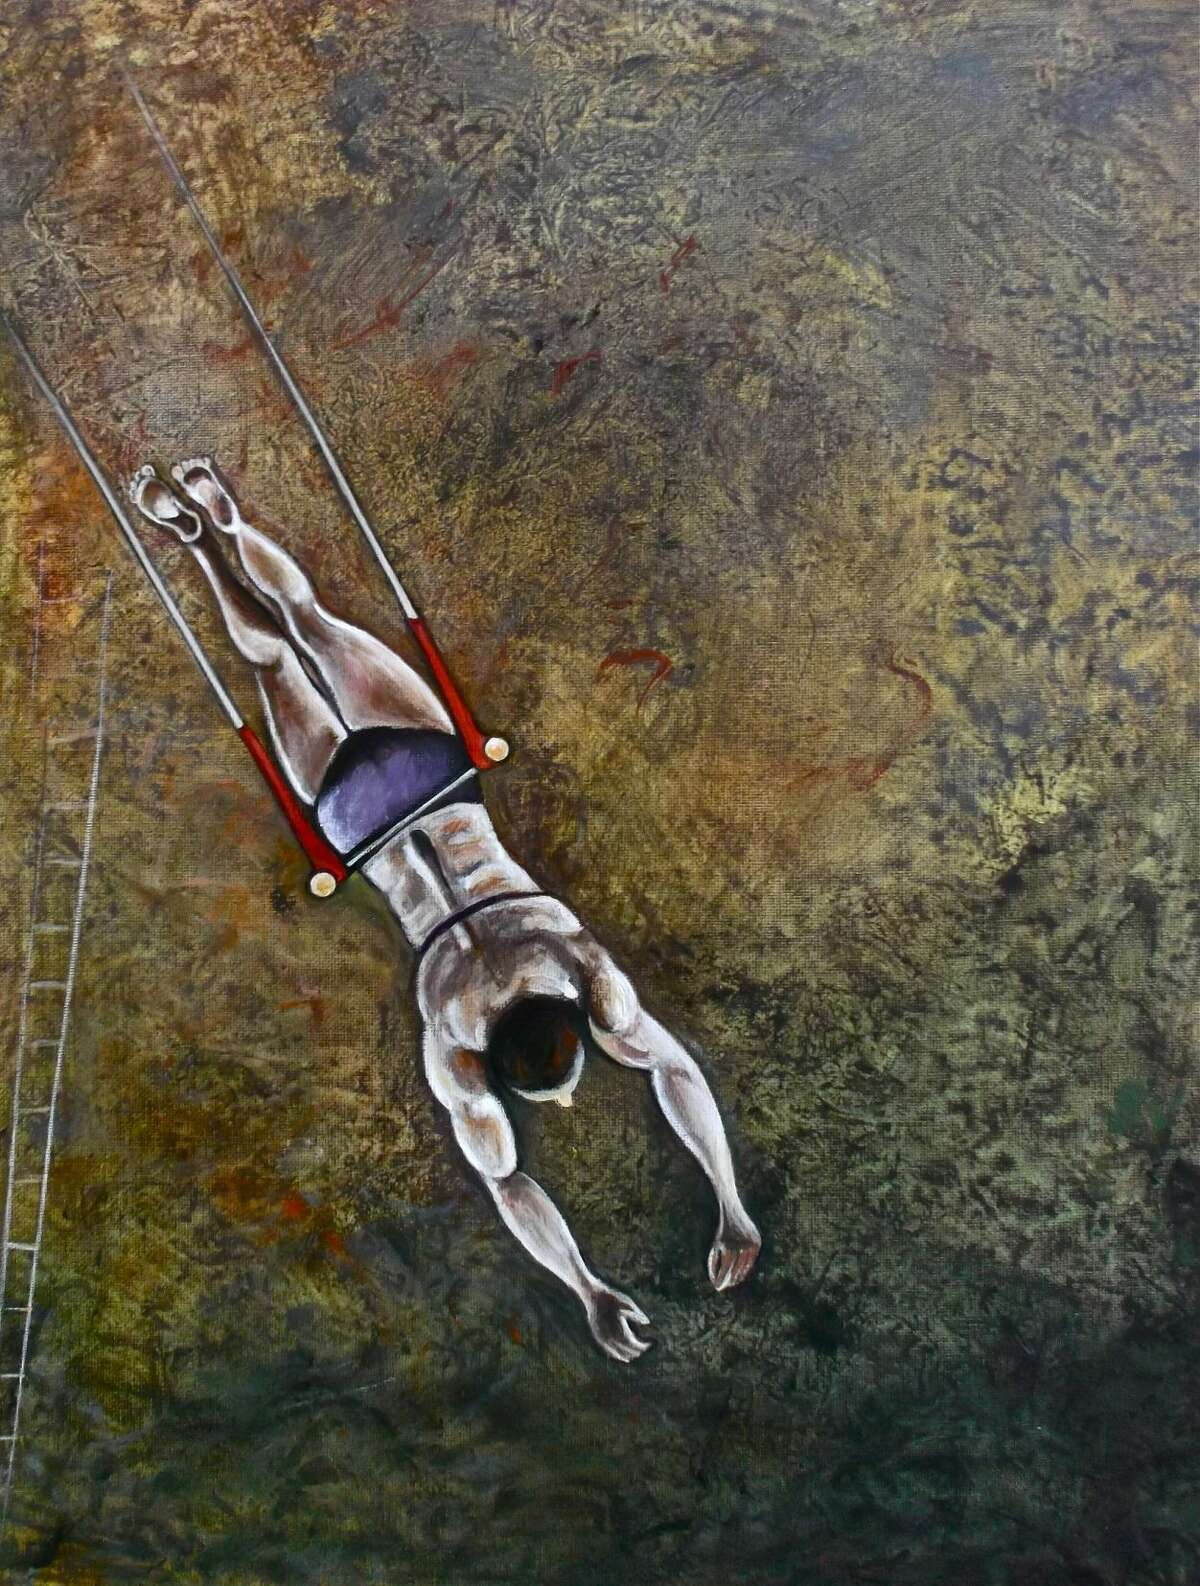 """""""Hovering"""" by artist Karen E Gersch is one of the more than 80 pieces on exhibit in Wilton Library's """"Aerial Grace & Altered Views: Karen E. Gersch and Pam Rouleau Art Exhibition,"""" opening Friday, Sept. 5, from 6-7:30 p.m."""